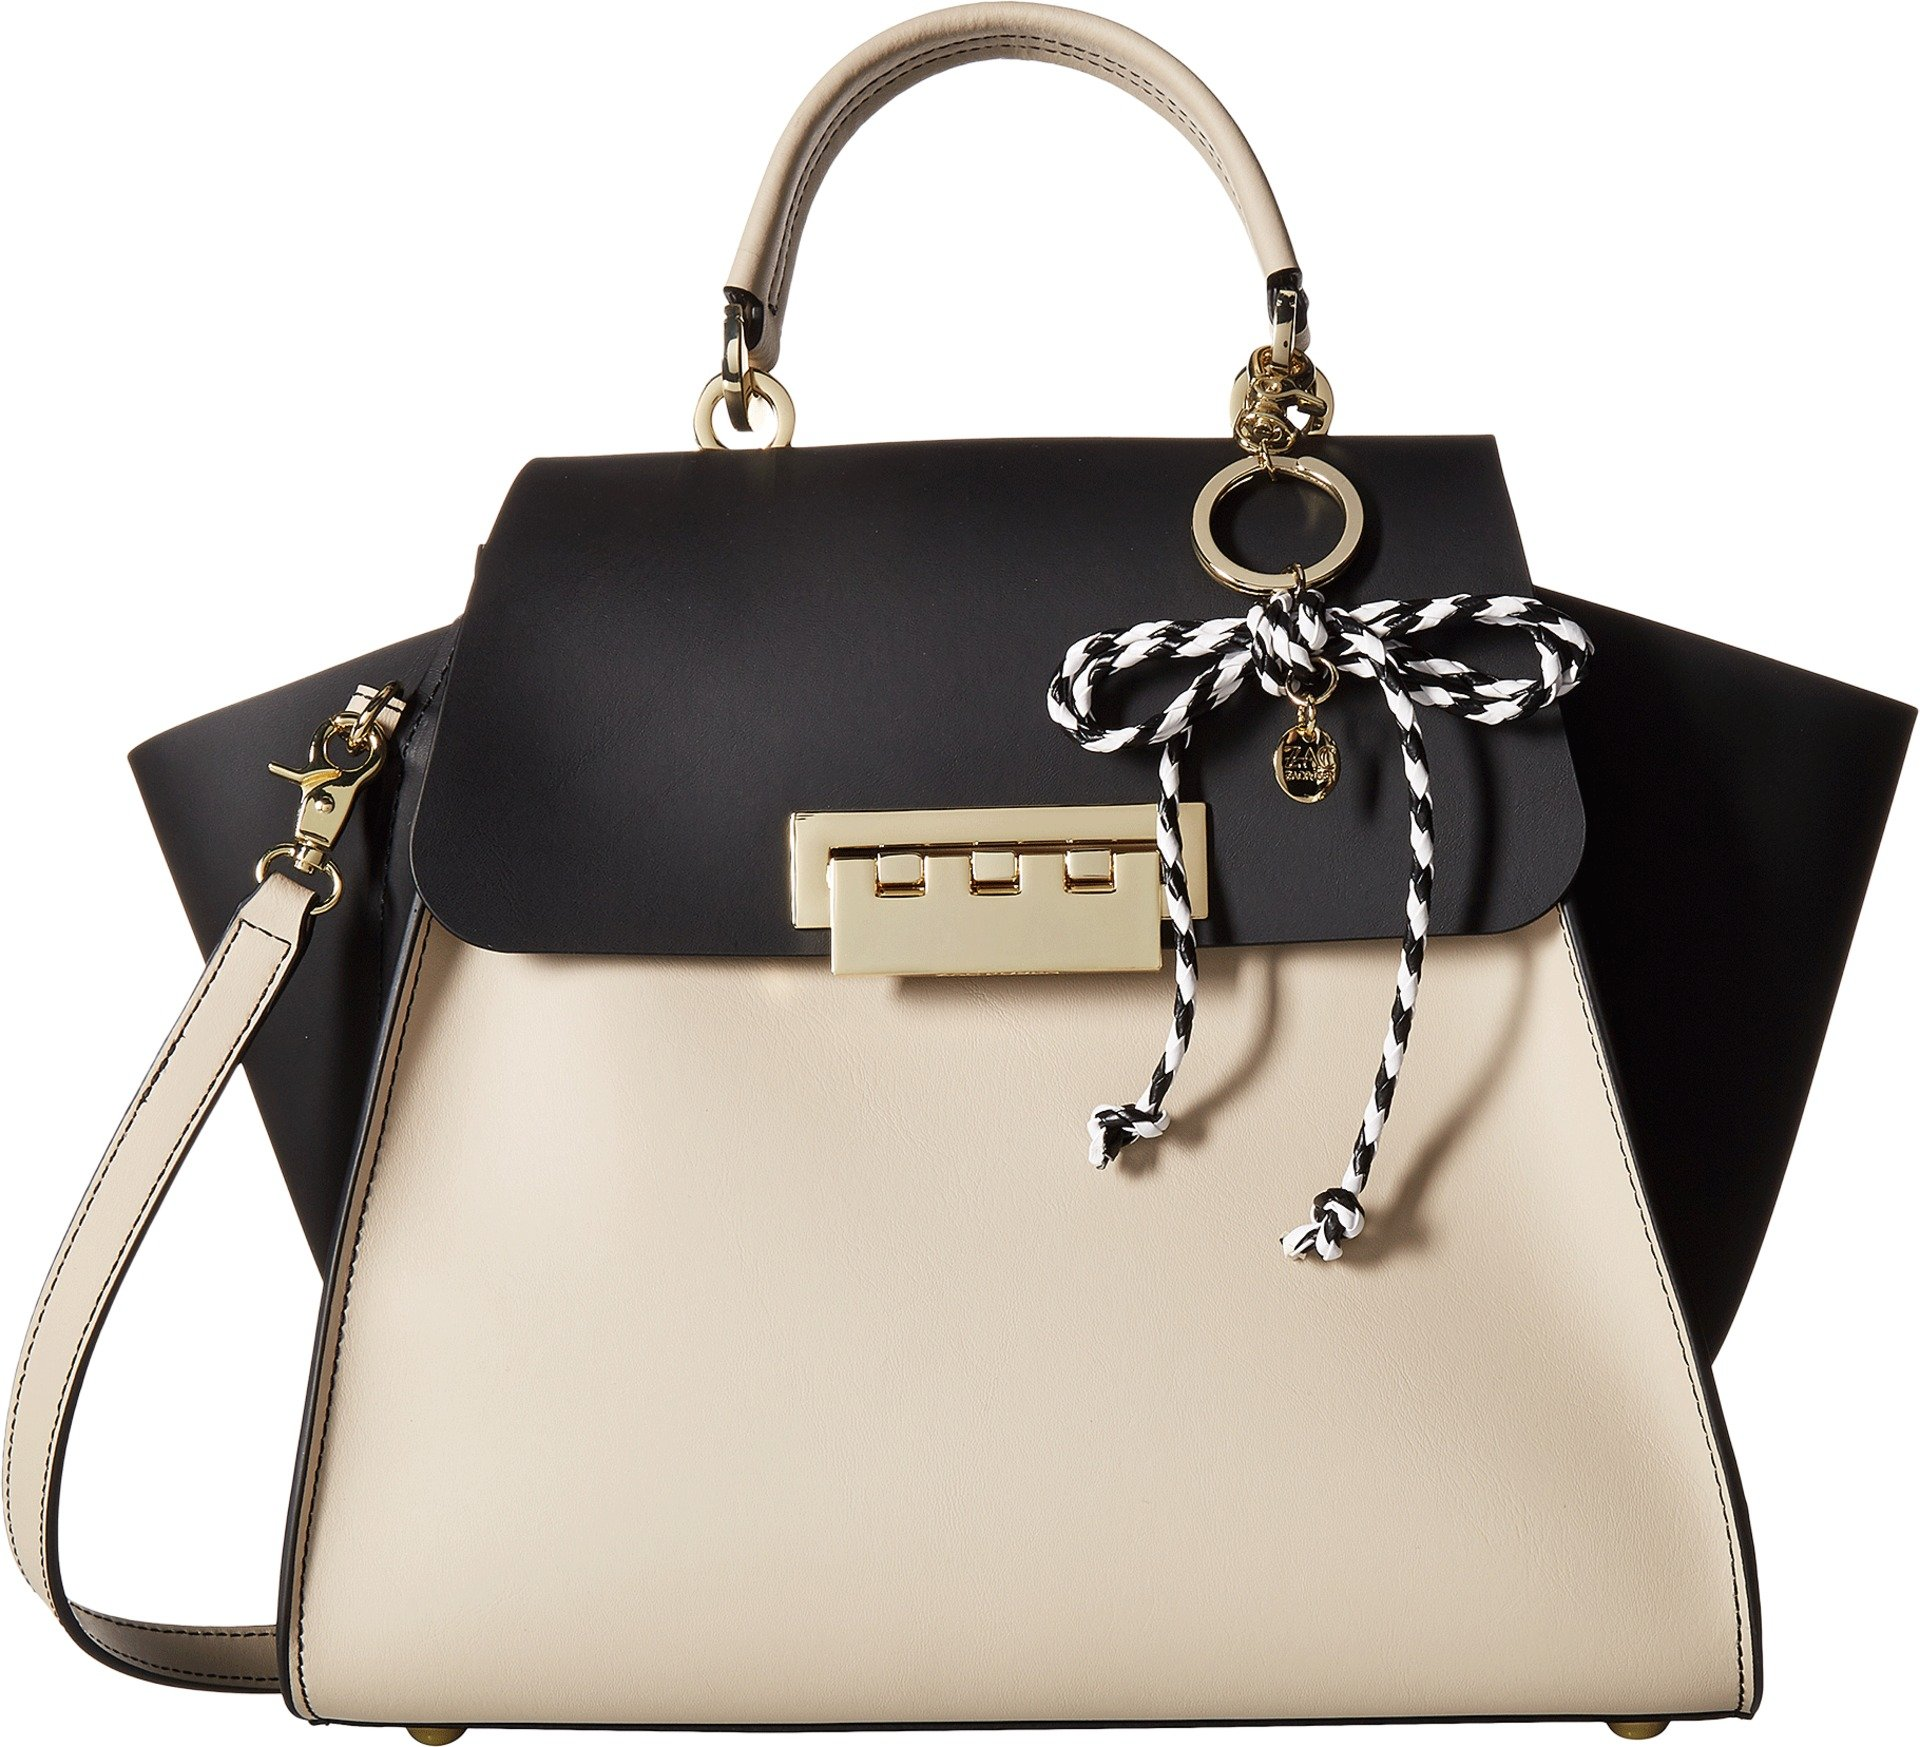 ZAC Zac Posen Women's Eartha Iconic Top-Handle Color Block with Rope Charm Black One Size